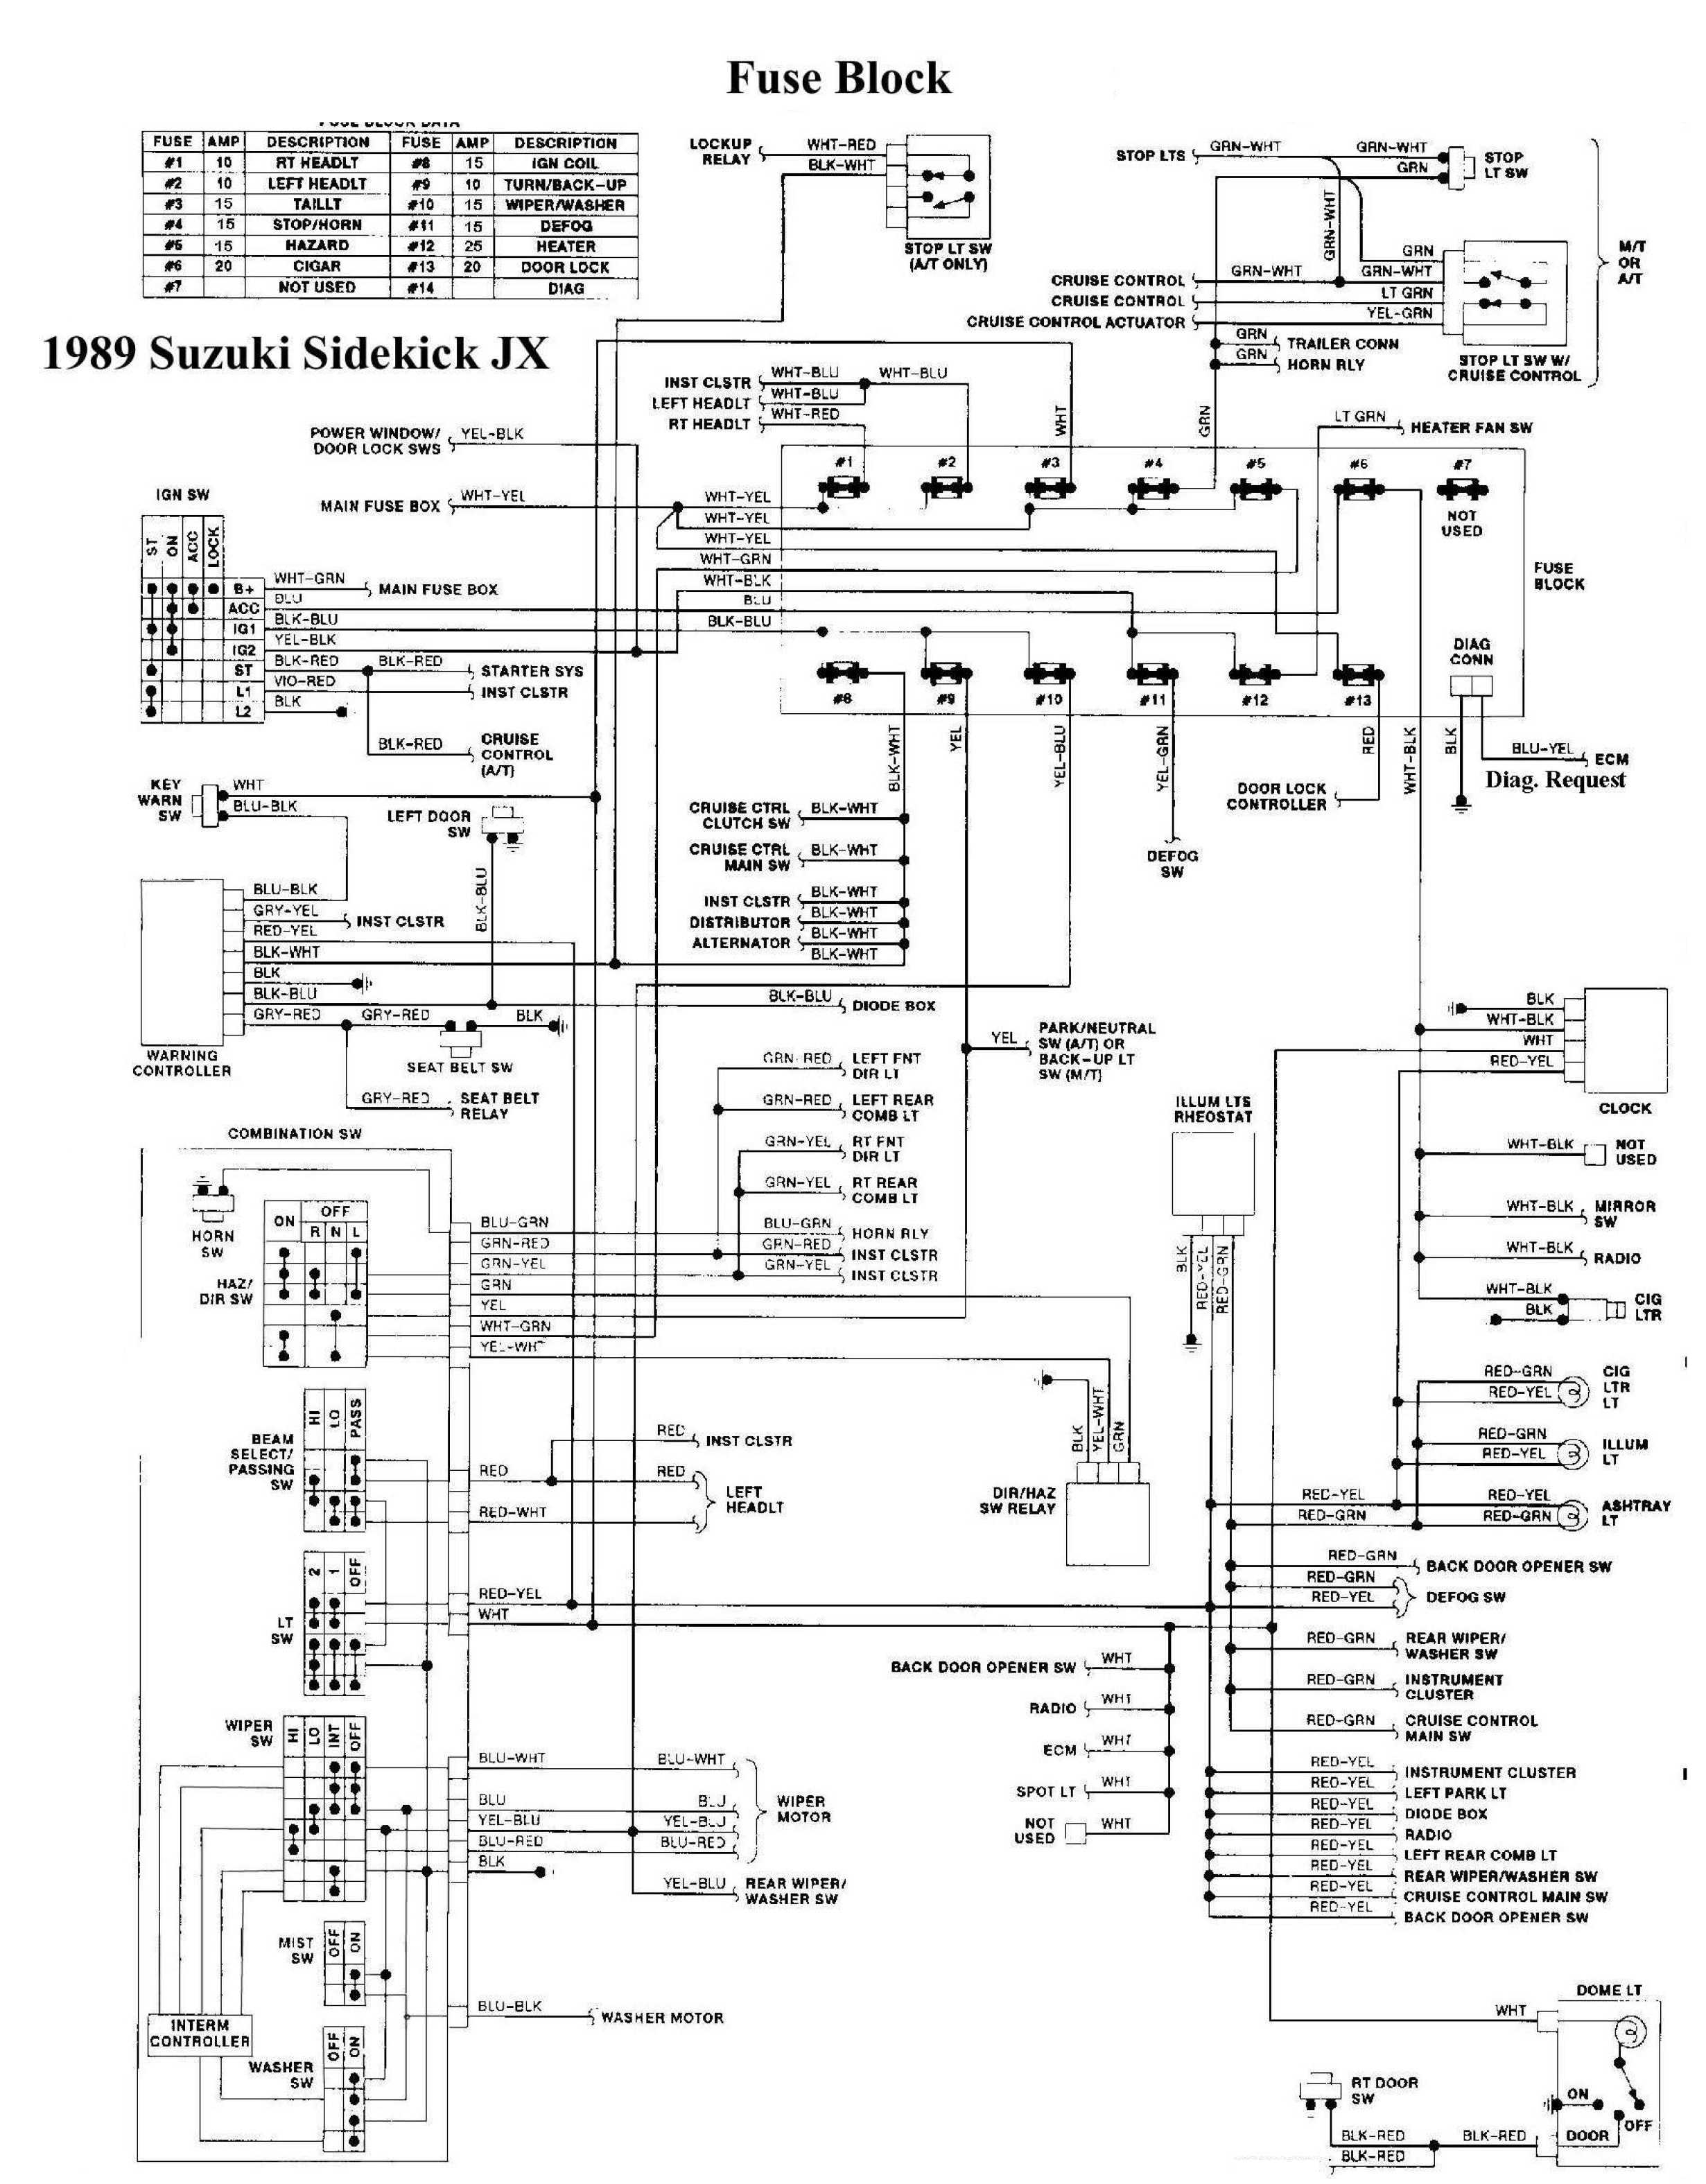 04 chevy silverado fuse box diagram 04 suzuki forenza fuse box diagram headlight switch problem! - suzuki forums: suzuki forum site #14